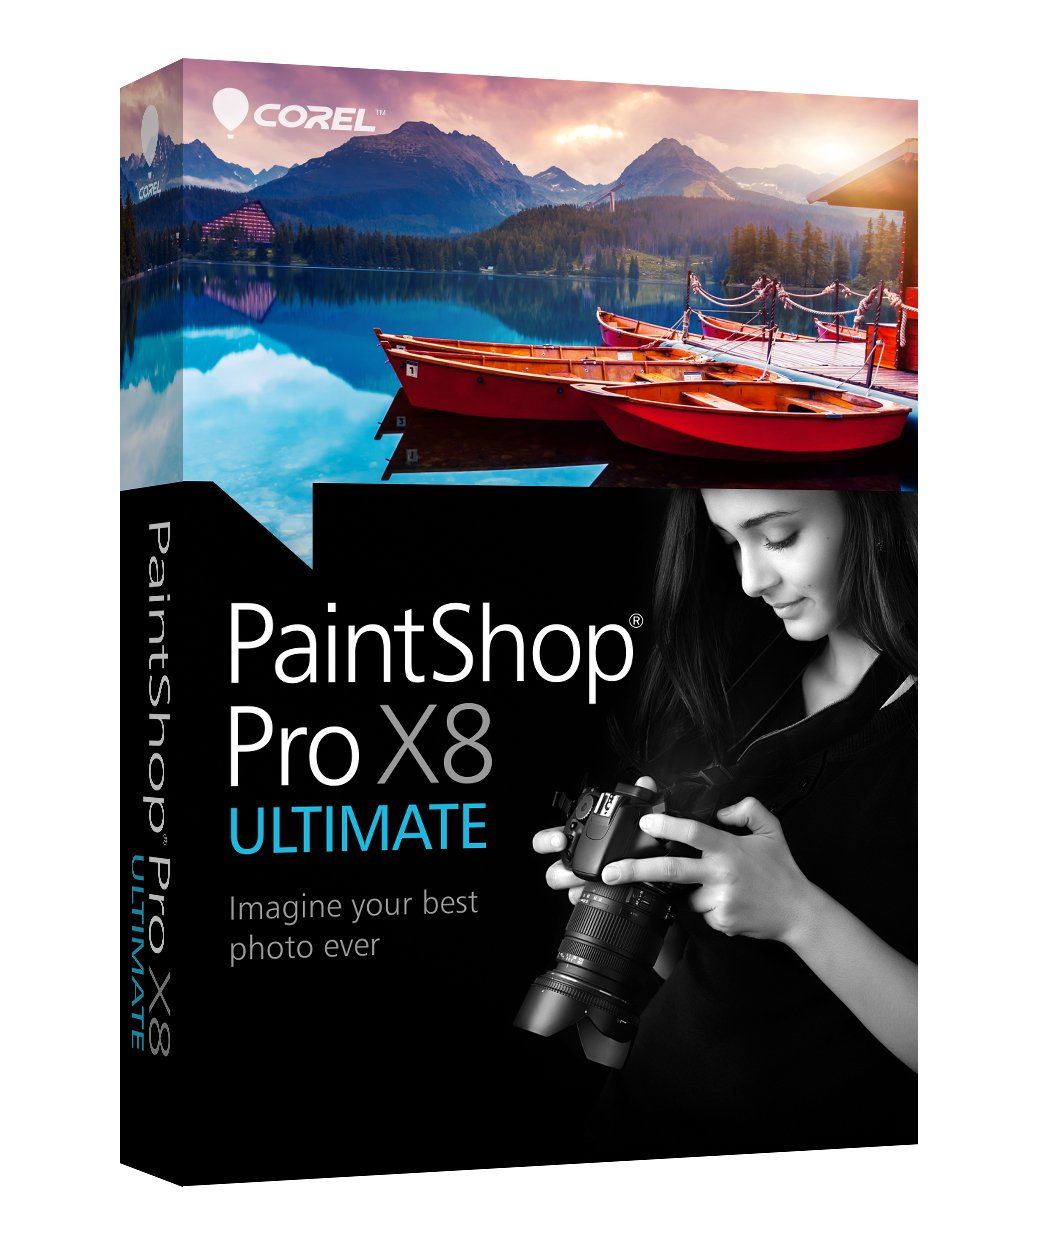 Corel PaintShop Pro X8 Ultimate [Old Version]